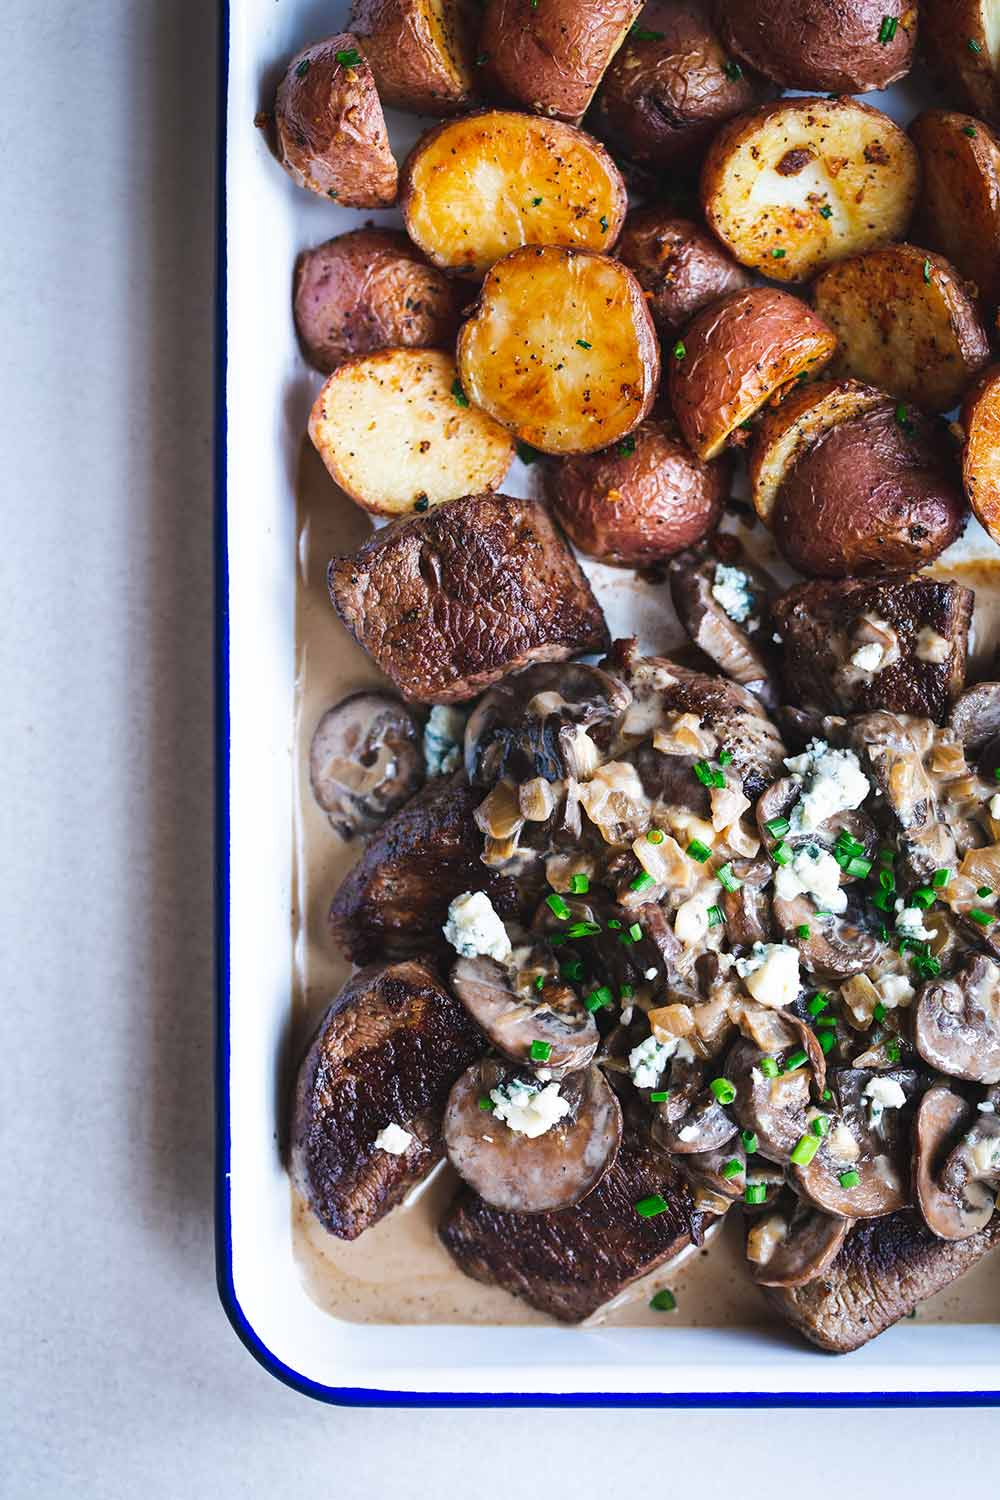 Steak tips, mushrooms, blue cheese sauce and potatoes on a sheet pan